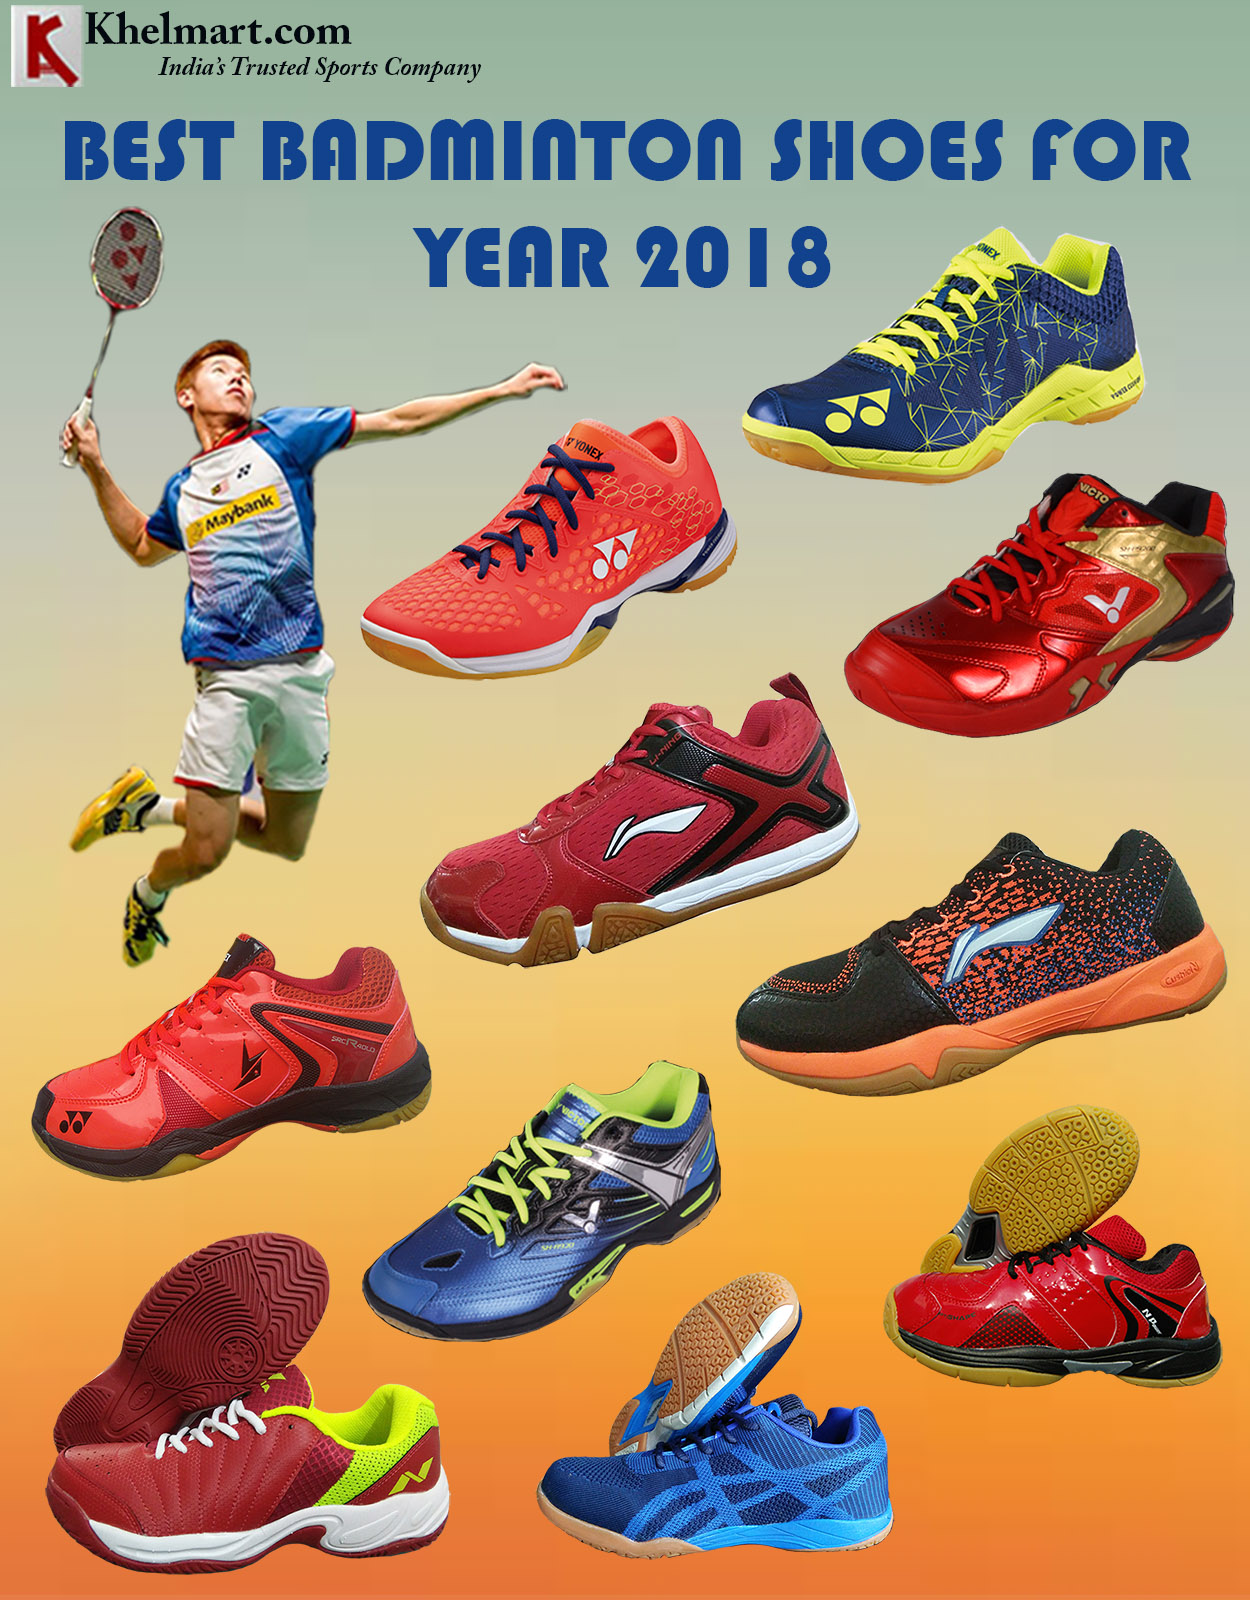 BEST BADMINTON SHOES FOR 2018